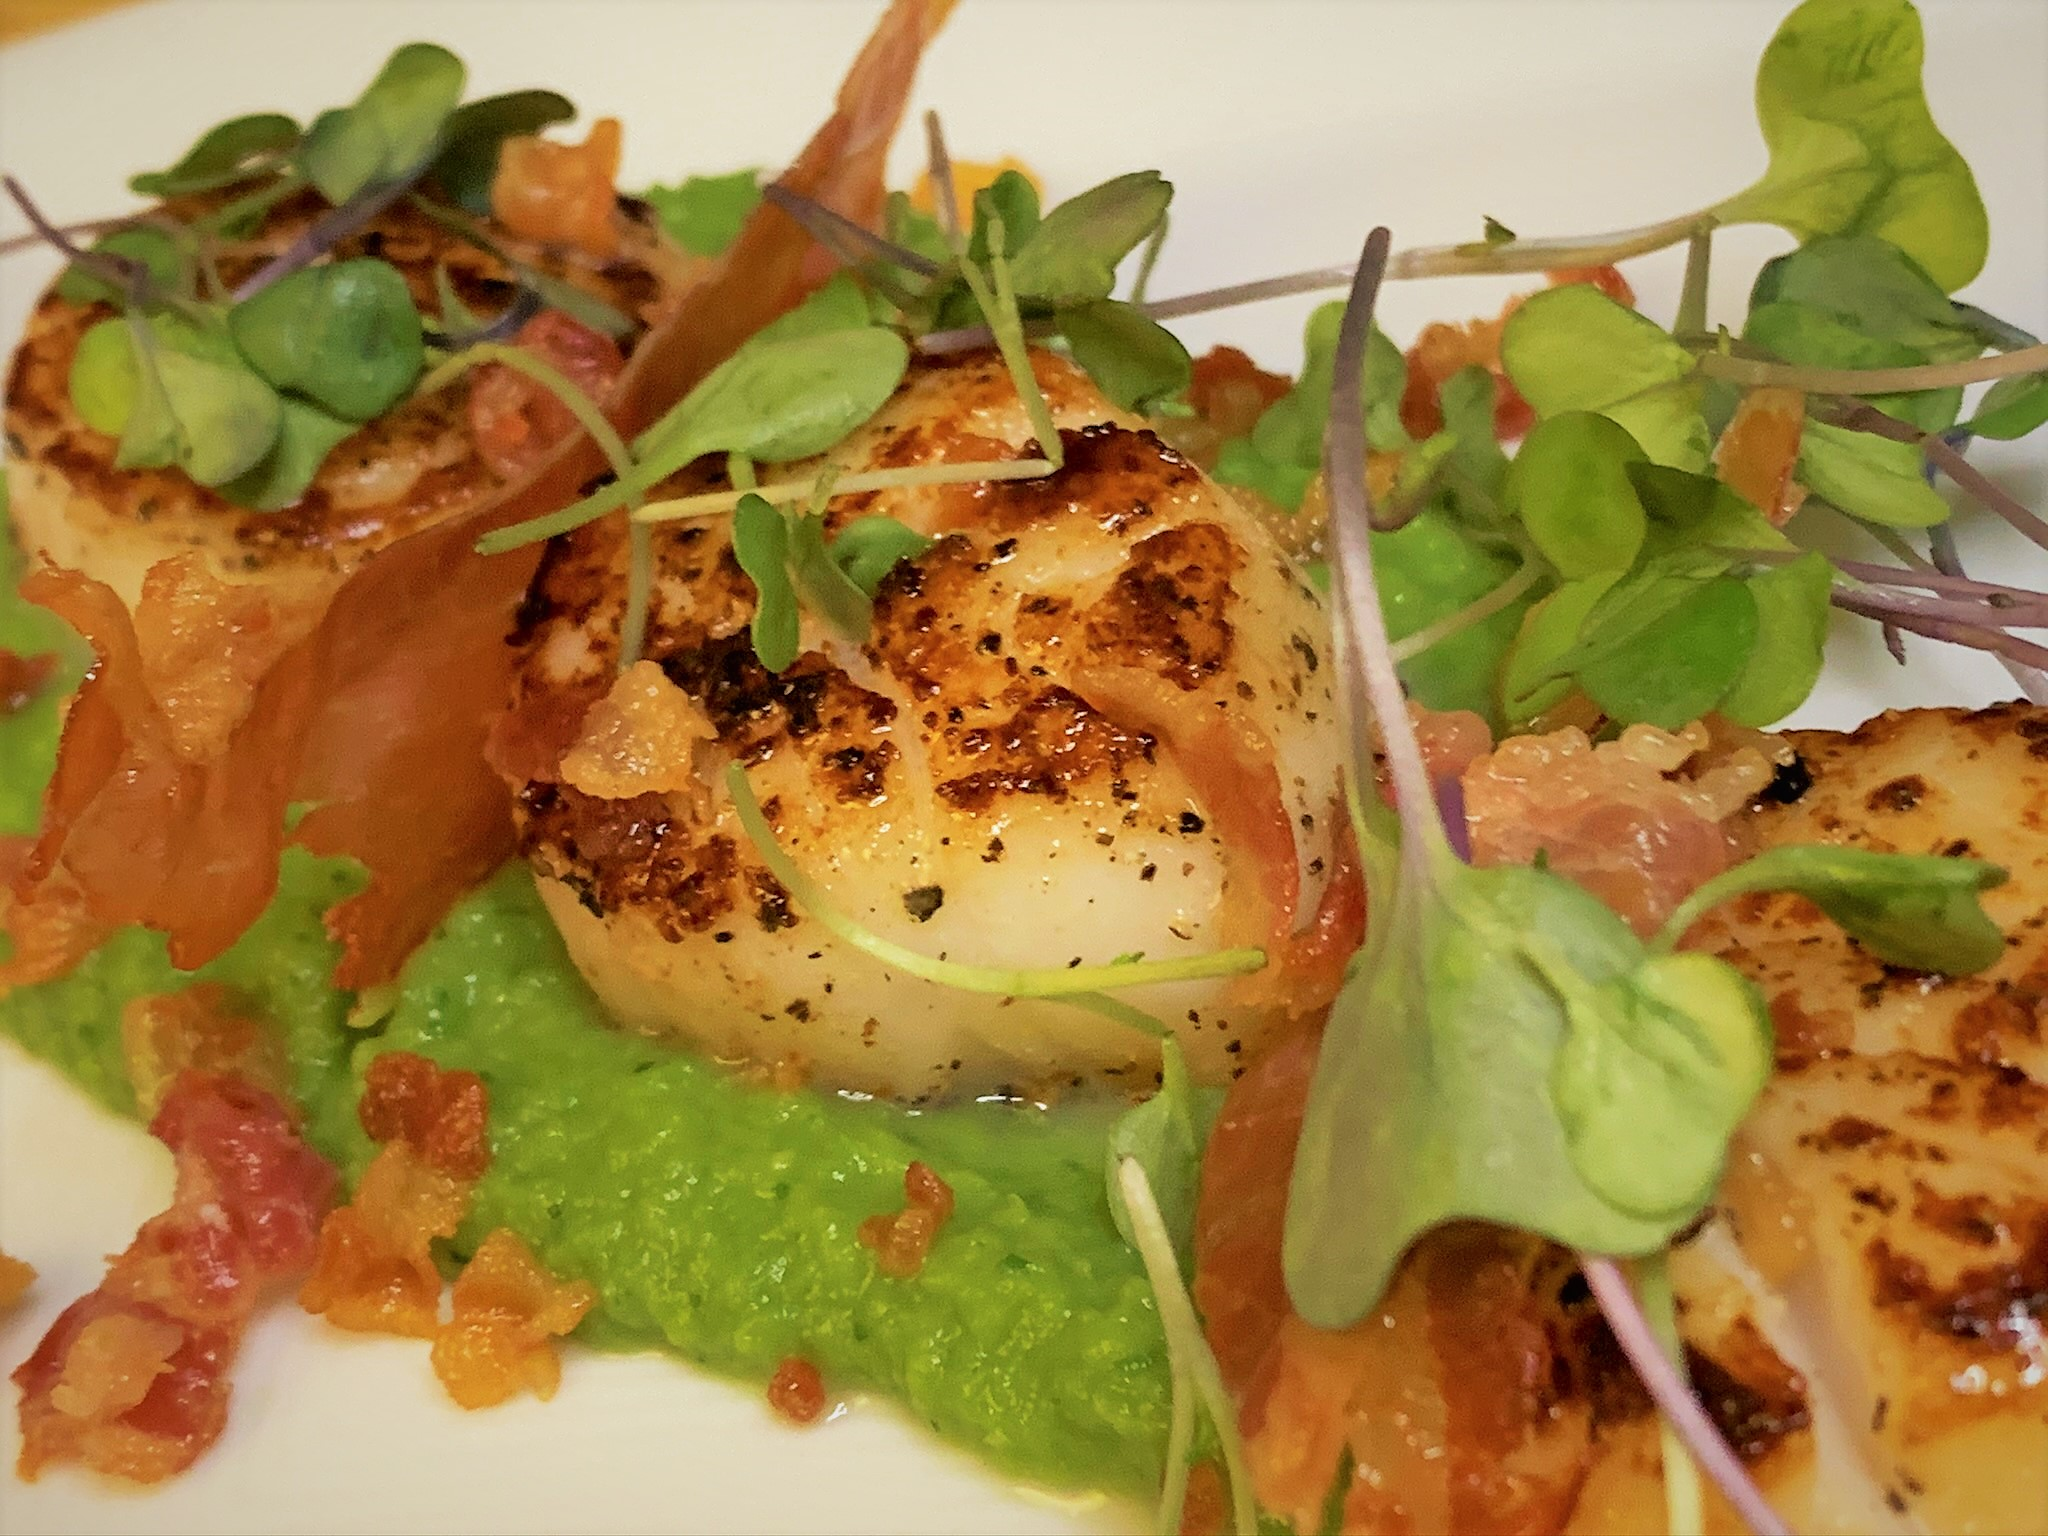 Our plated Pancetta Seared Scallops with Crispy Prosciutto & Minted Pea Puree